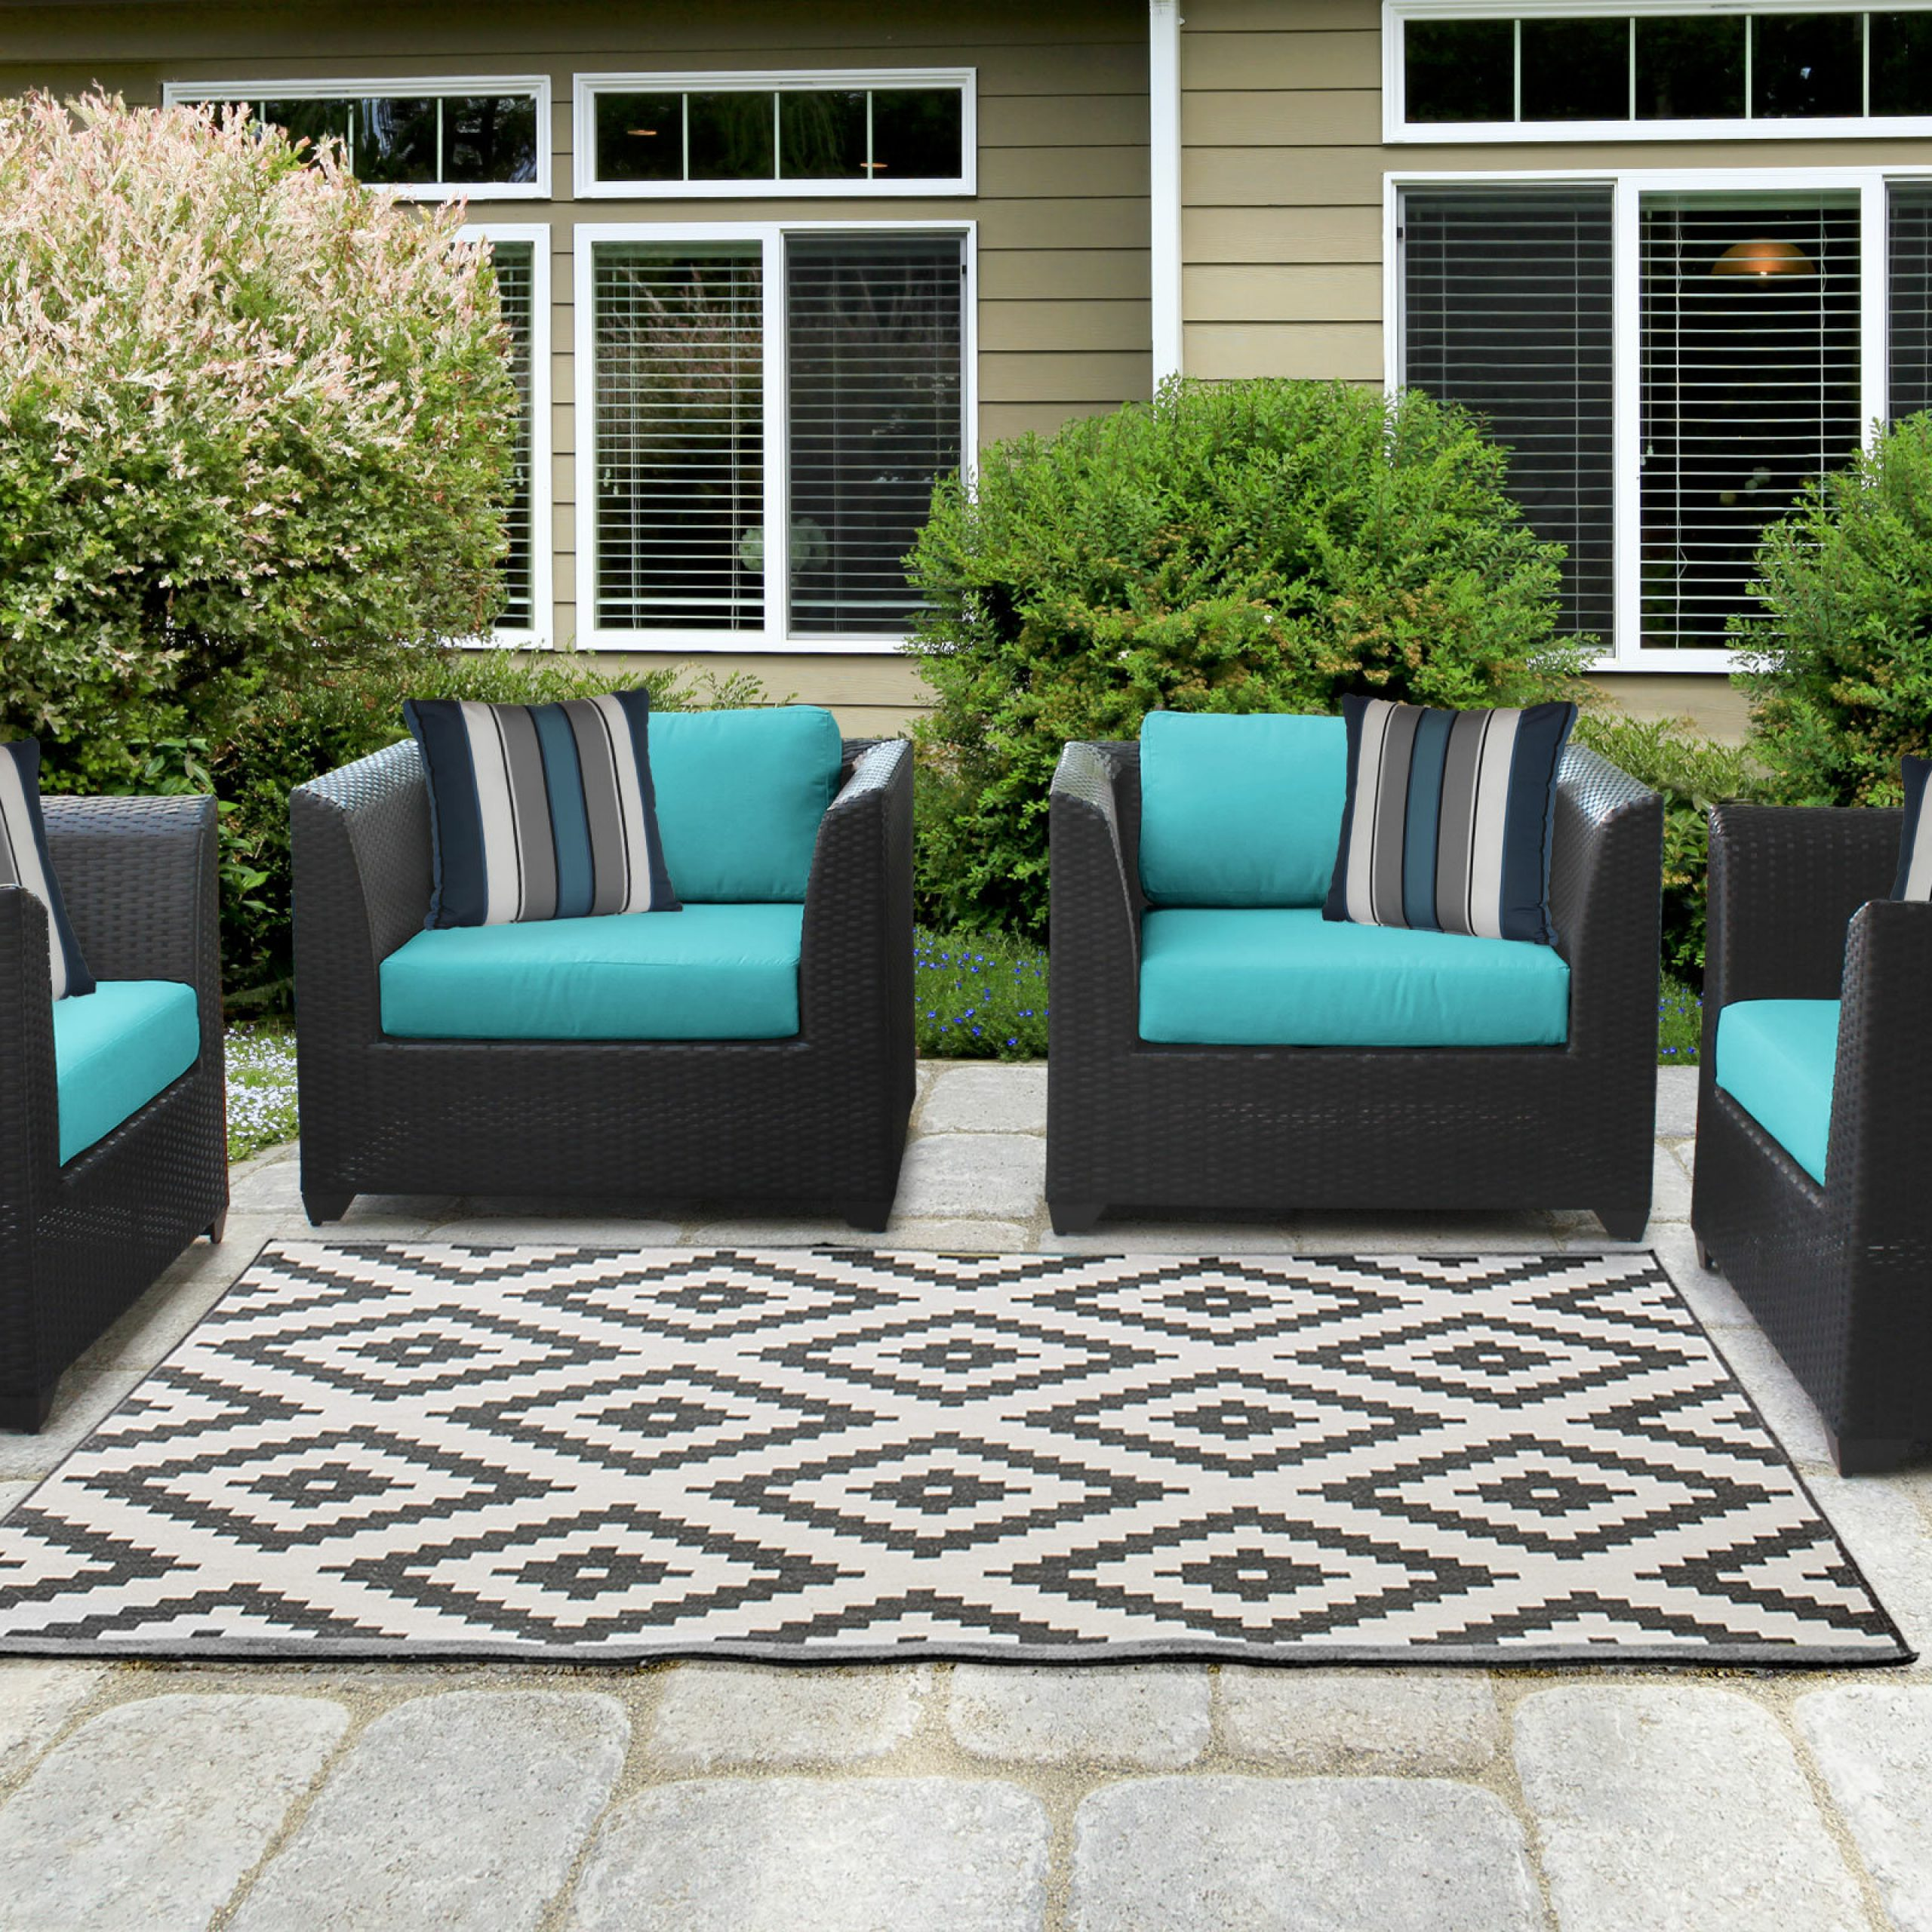 Tegan Patio Chair With Cushions Pertaining To Fashionable Tegan Patio Sofas With Cushions (View 14 of 25)